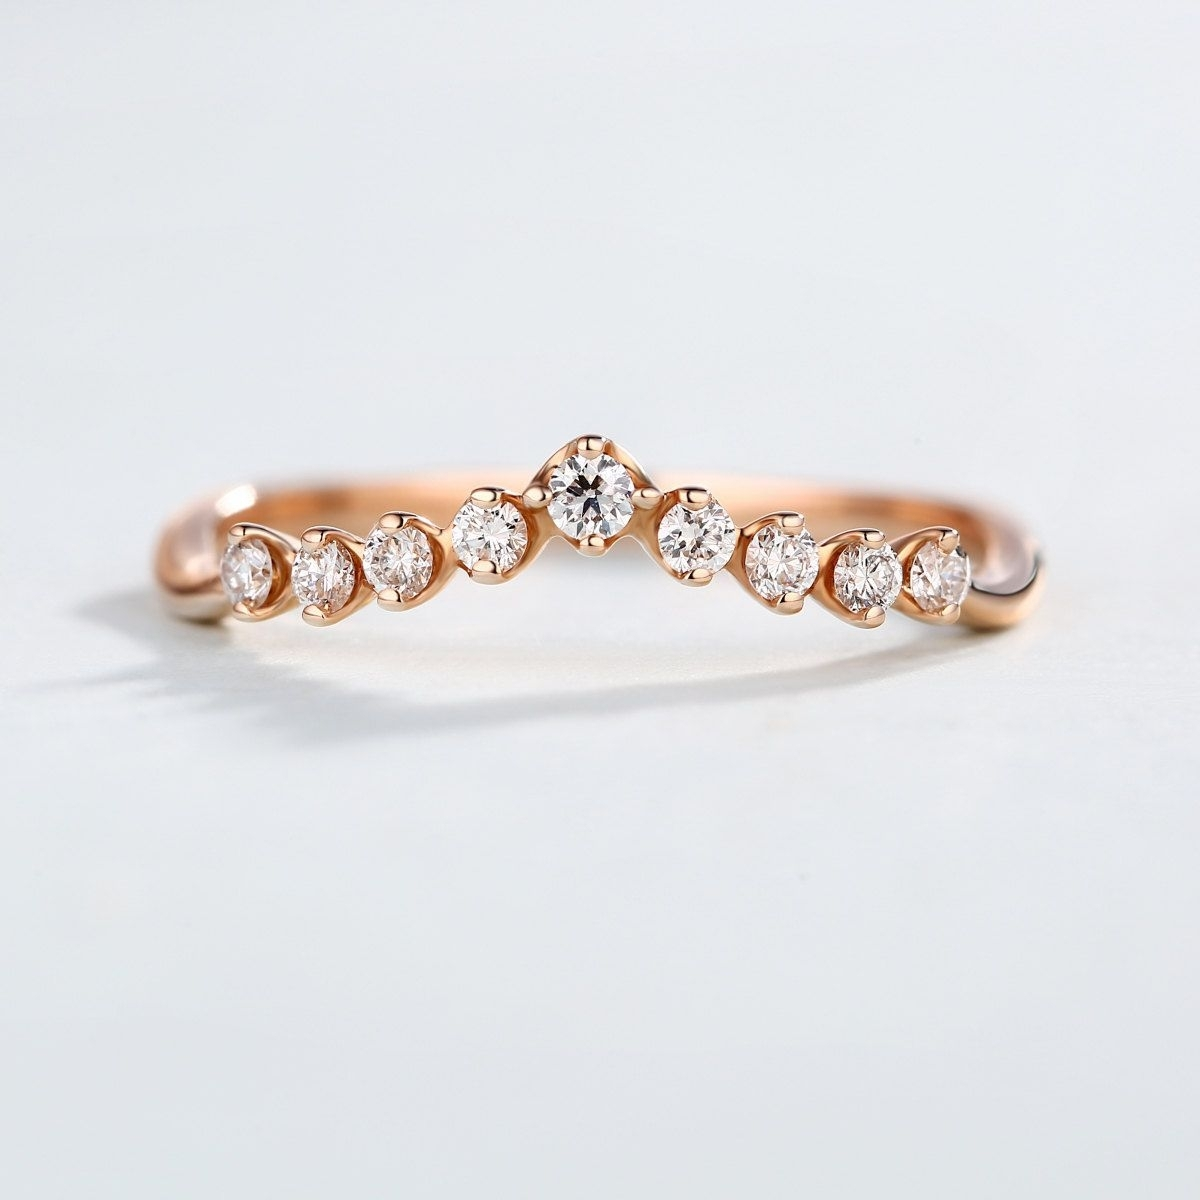 Curved Diamond Ring, Wedding Band 14K Rose Gold Ring Chevron Ring Intended For 2017 Chevron Eternity Rings (View 4 of 15)